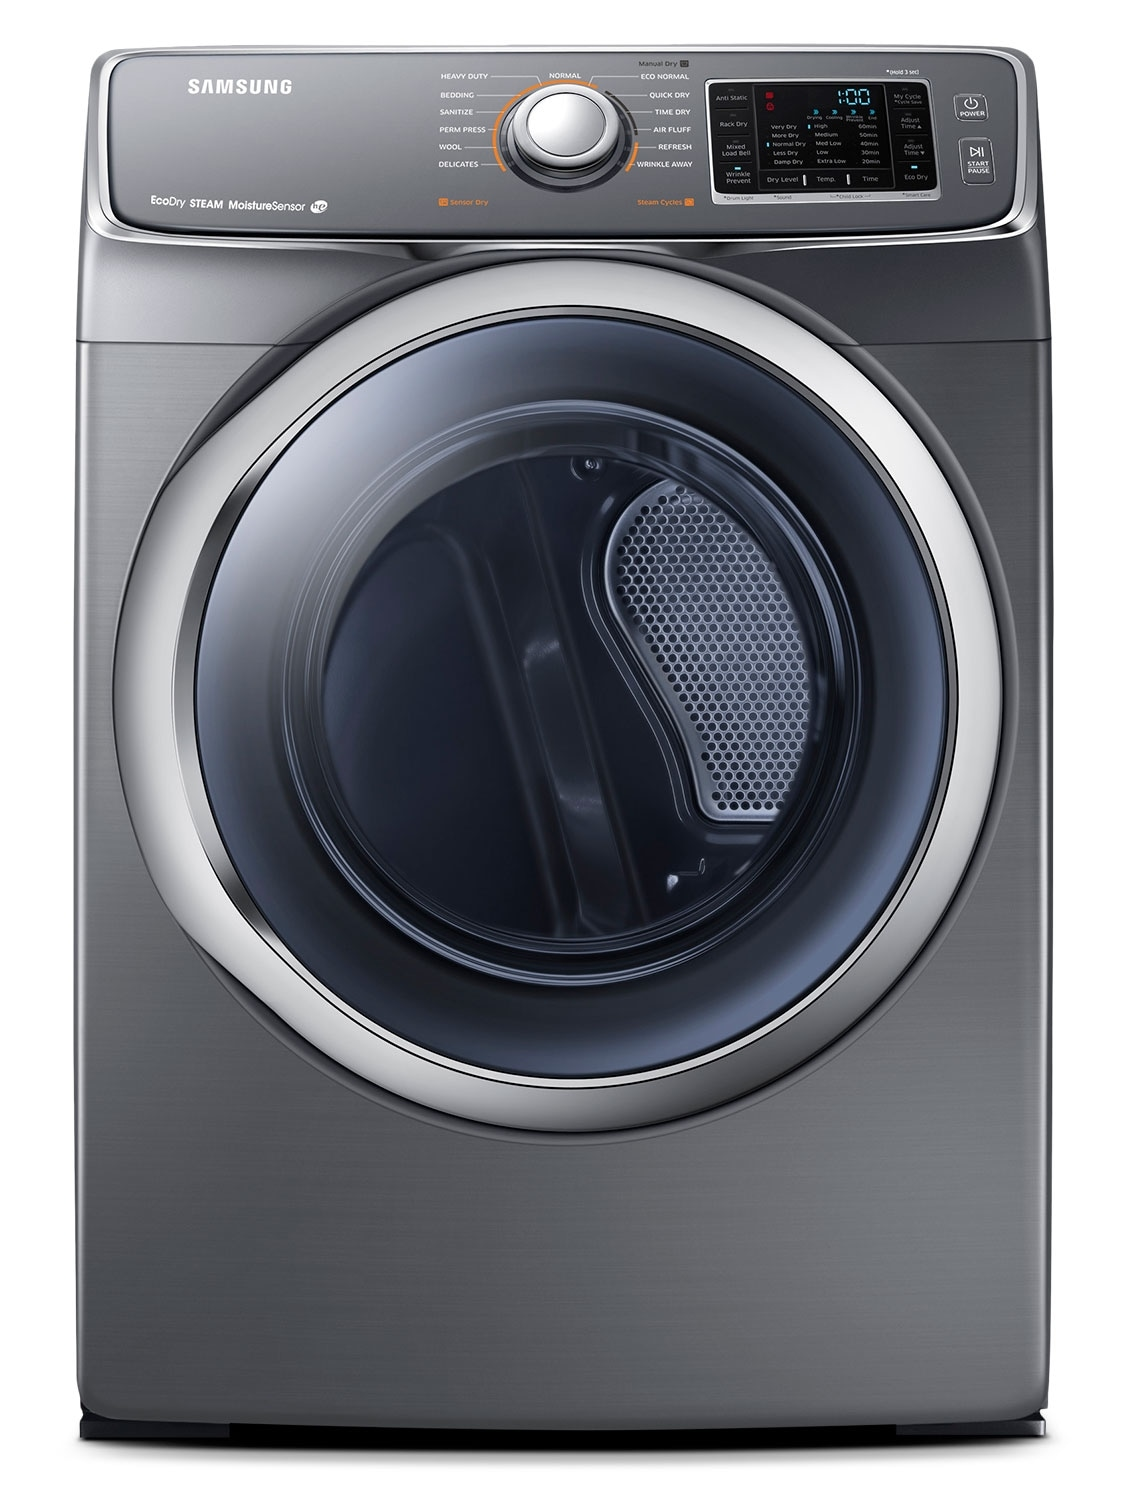 Washers and Dryers - Samsung Platinum Electric Dryer (7.5 Cu. Ft.) - DV42H5600EP/AC